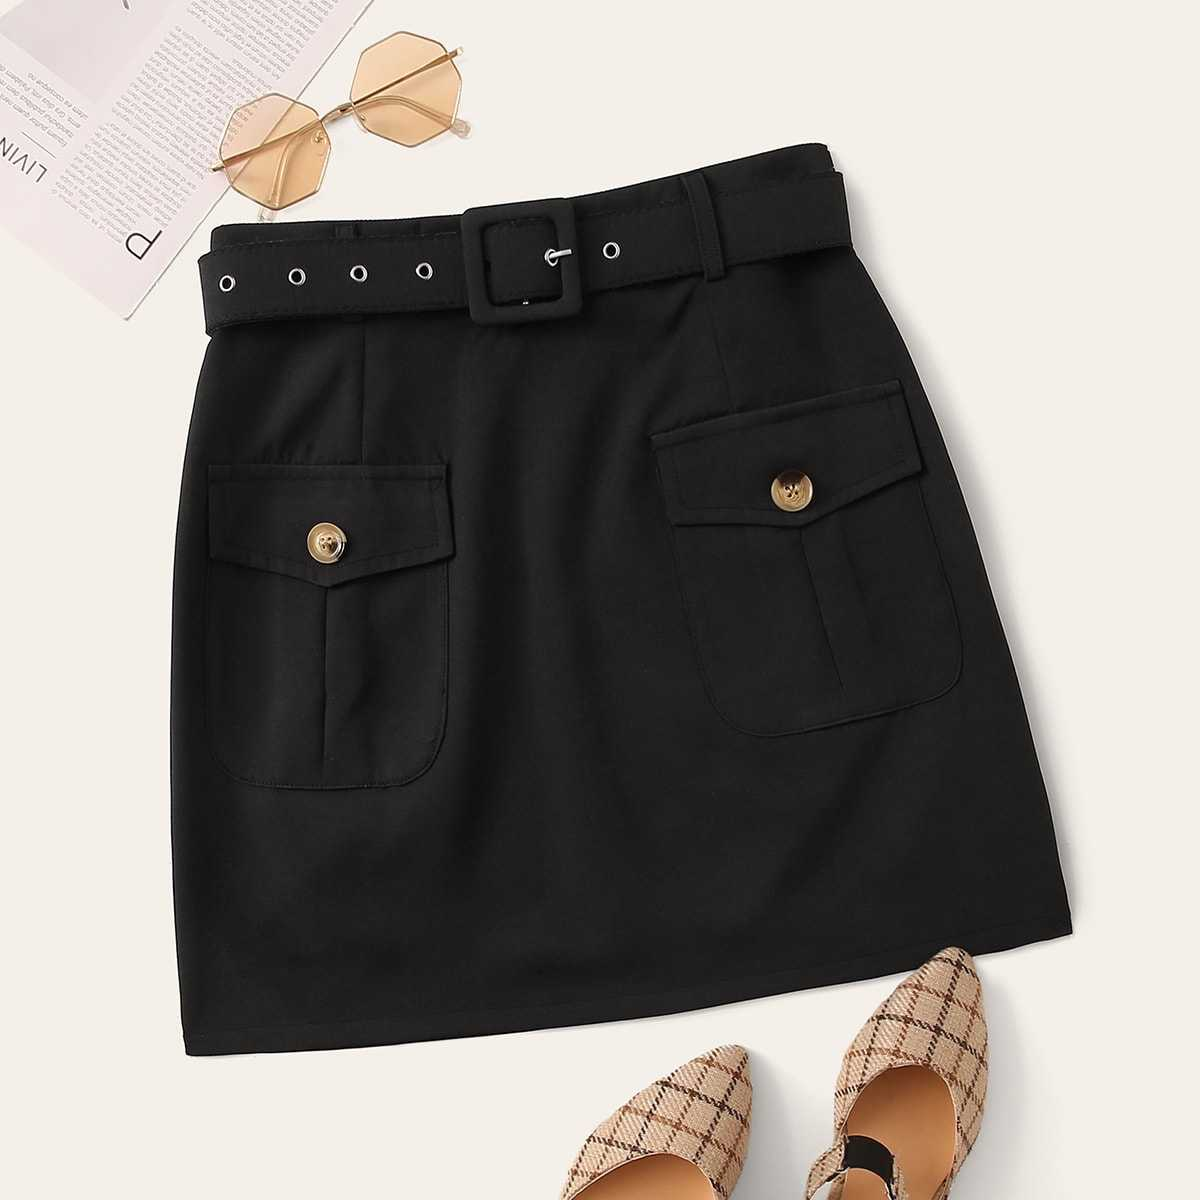 Button Detail Belted Skirt in Black by ROMWE on GOOFASH